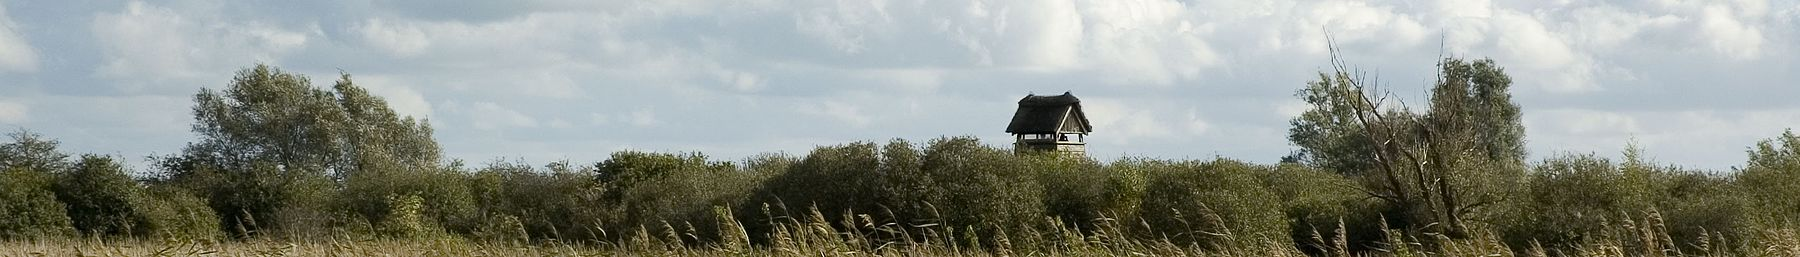 WV banner Cambridgeshire Wicken Fen.jpg